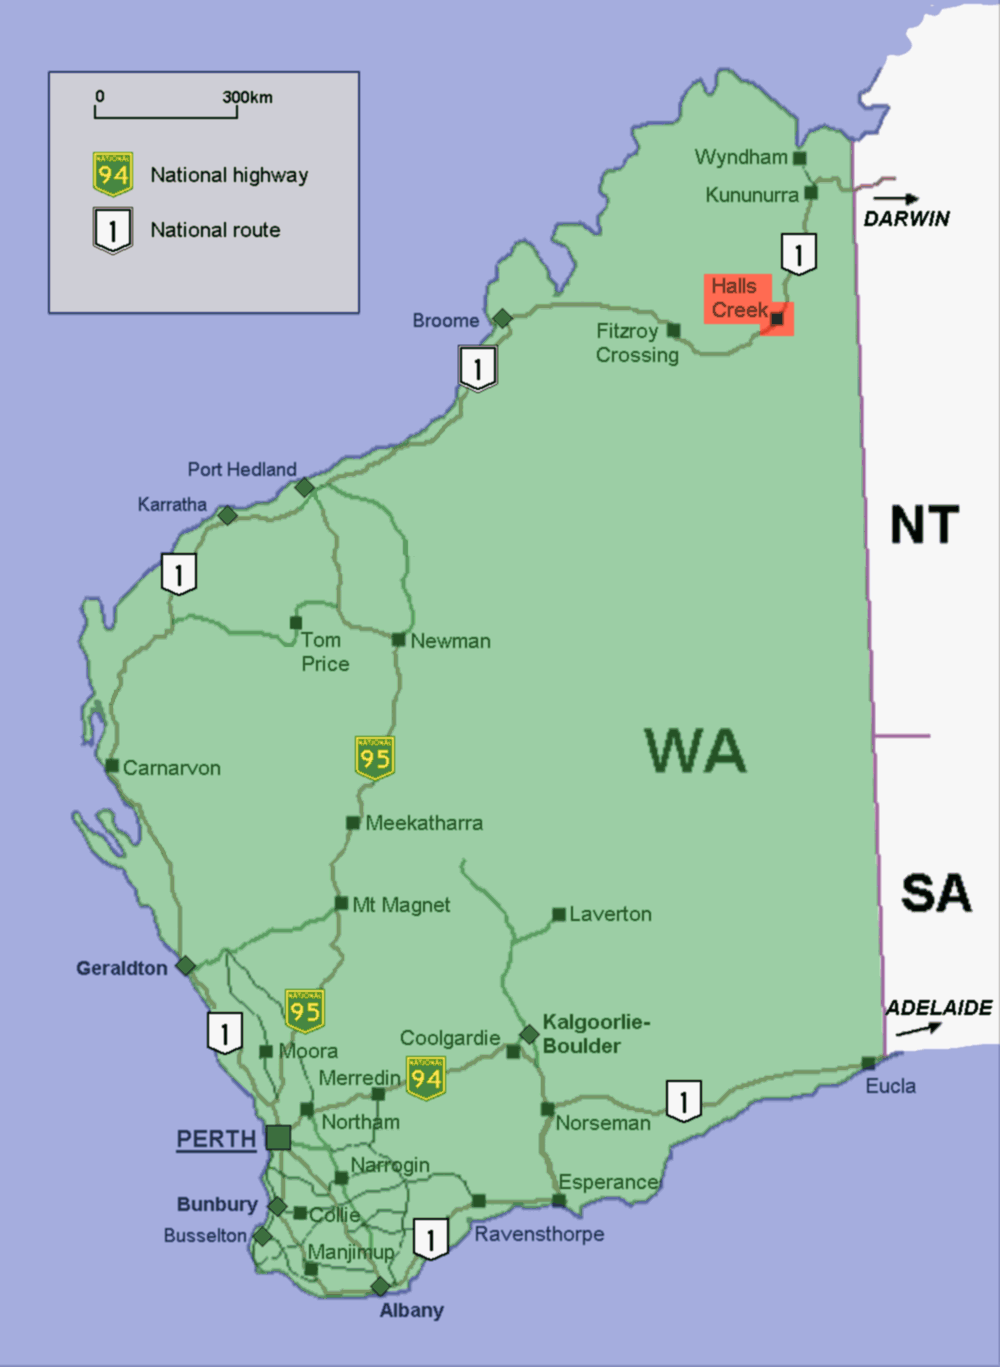 ... map in Western Australia.PNG - Wikipedia, the free encyclopedia